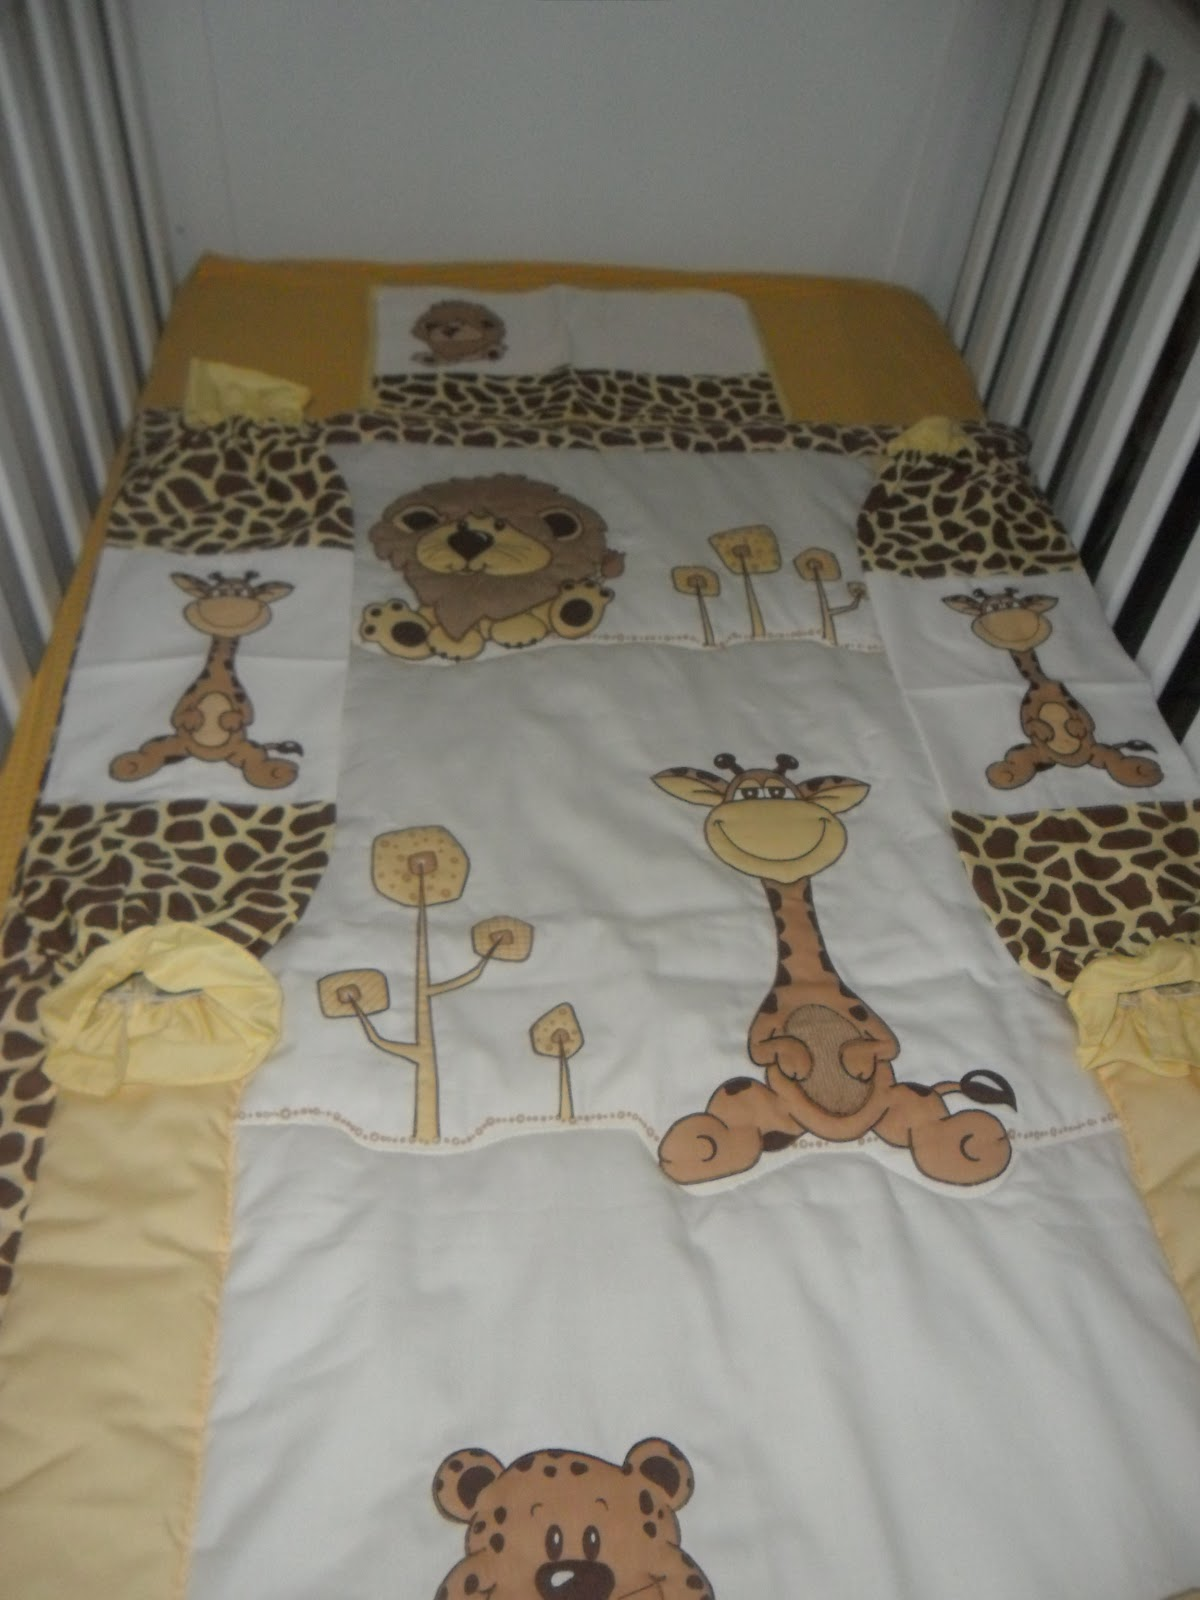 Crib for sale in olongapo - Crib Mattress And Safari Bedding